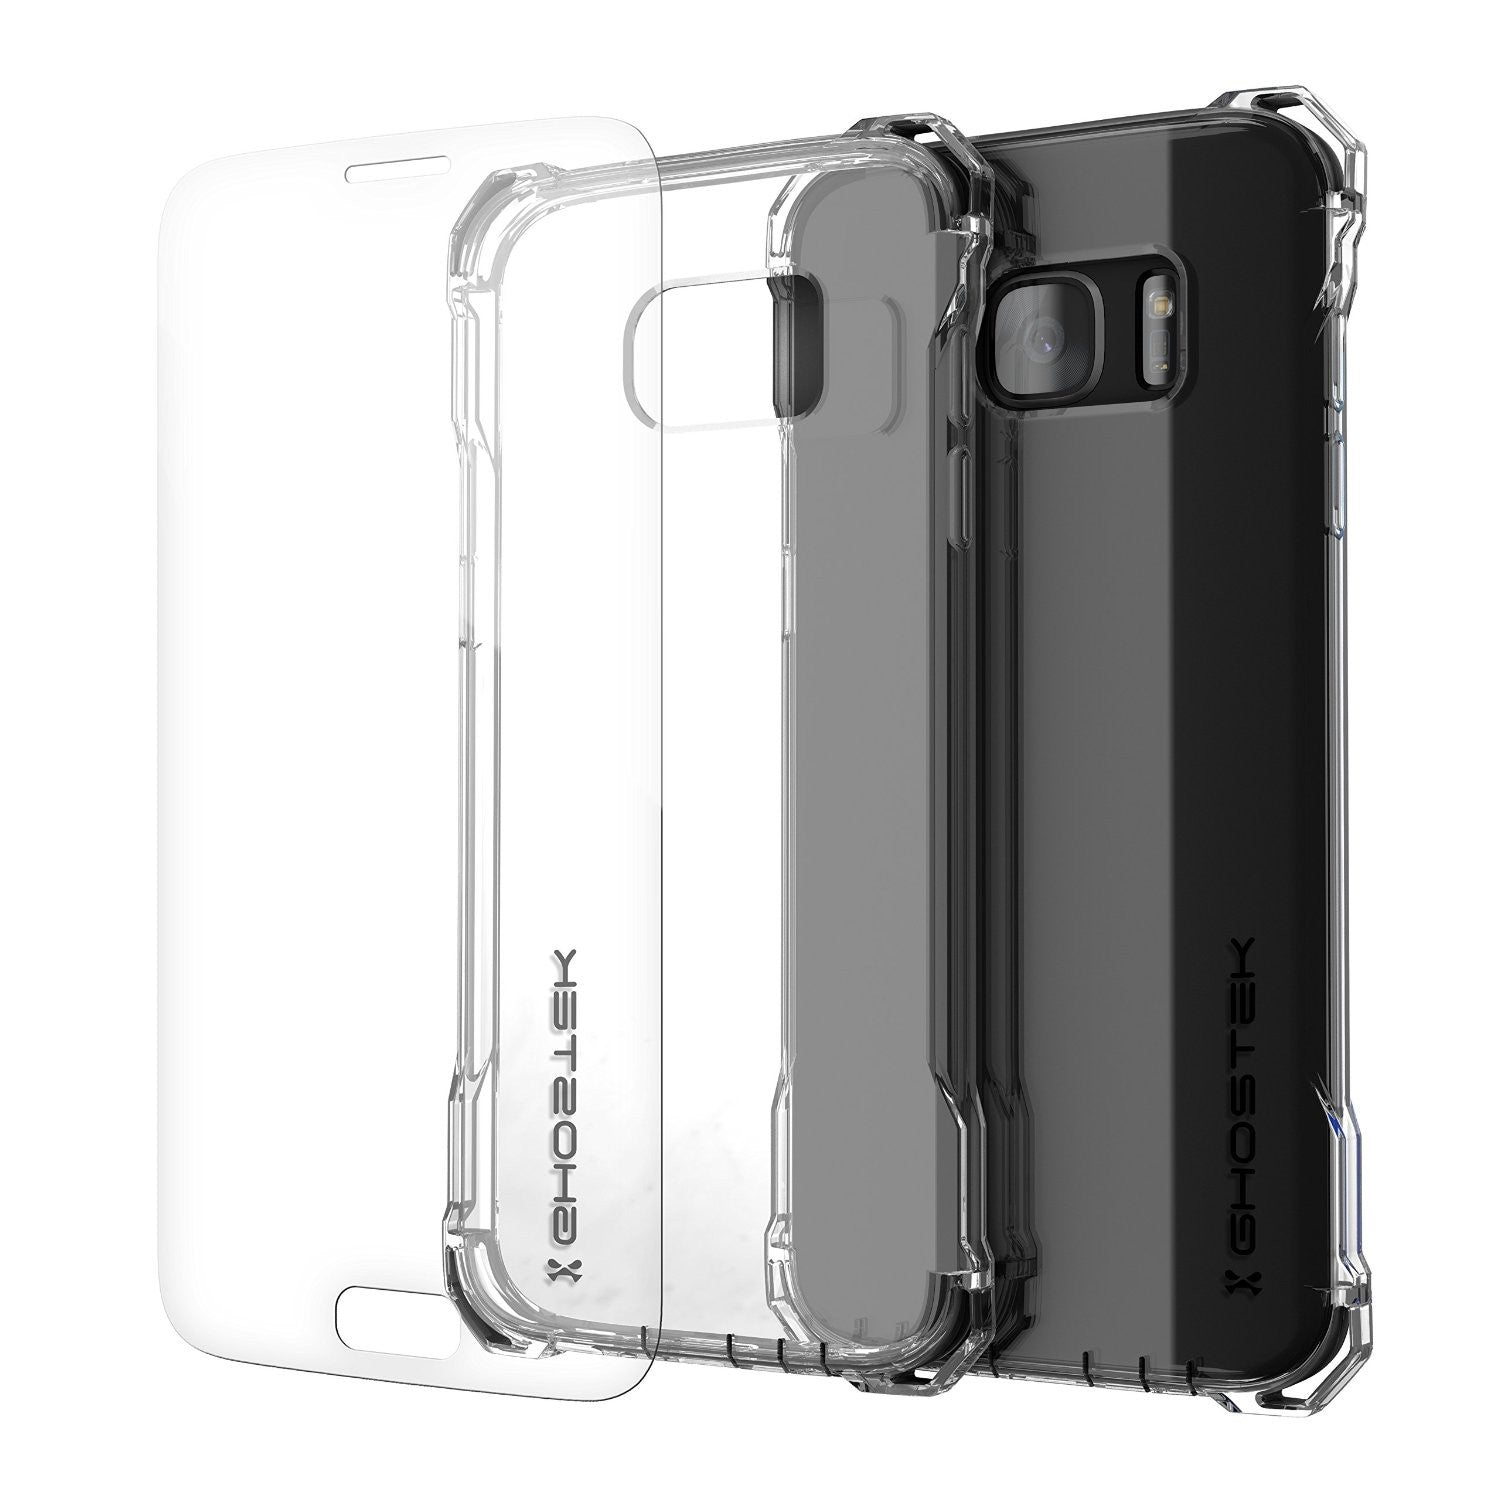 samsung s7 edge phone case and screen protector